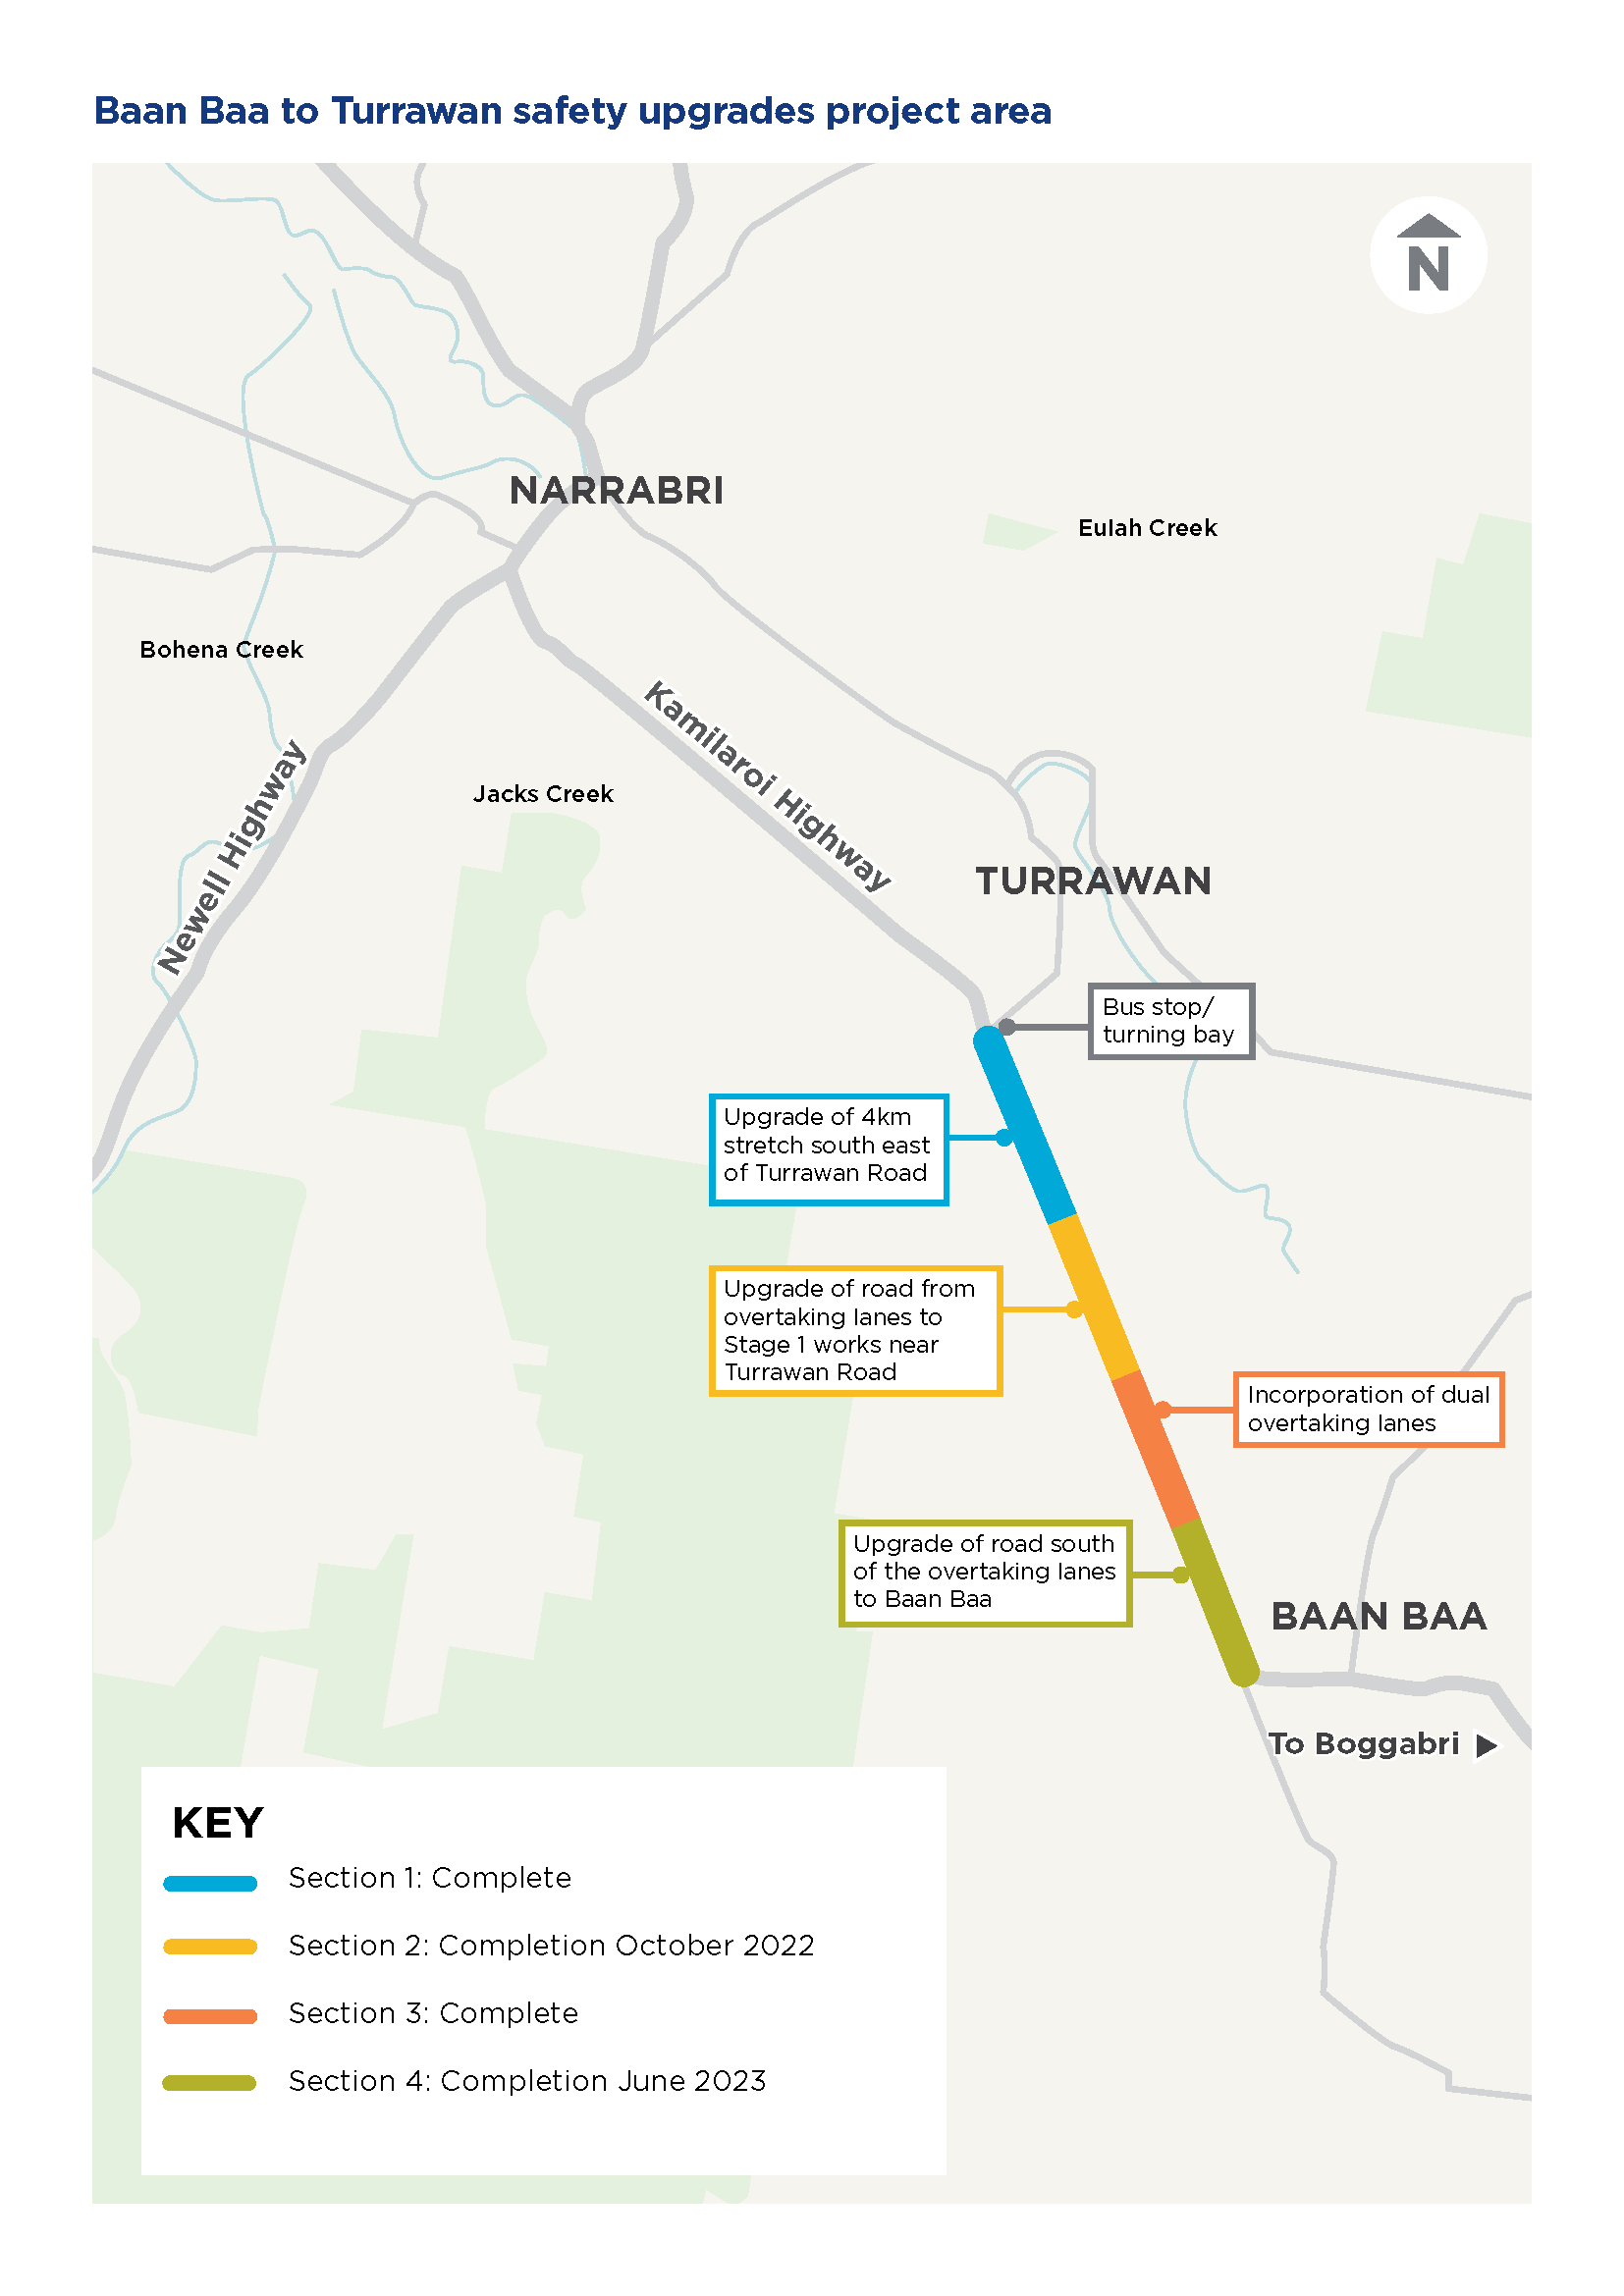 Projects happening on the Kamilaroi Highway between Baan Baa to Turrawan